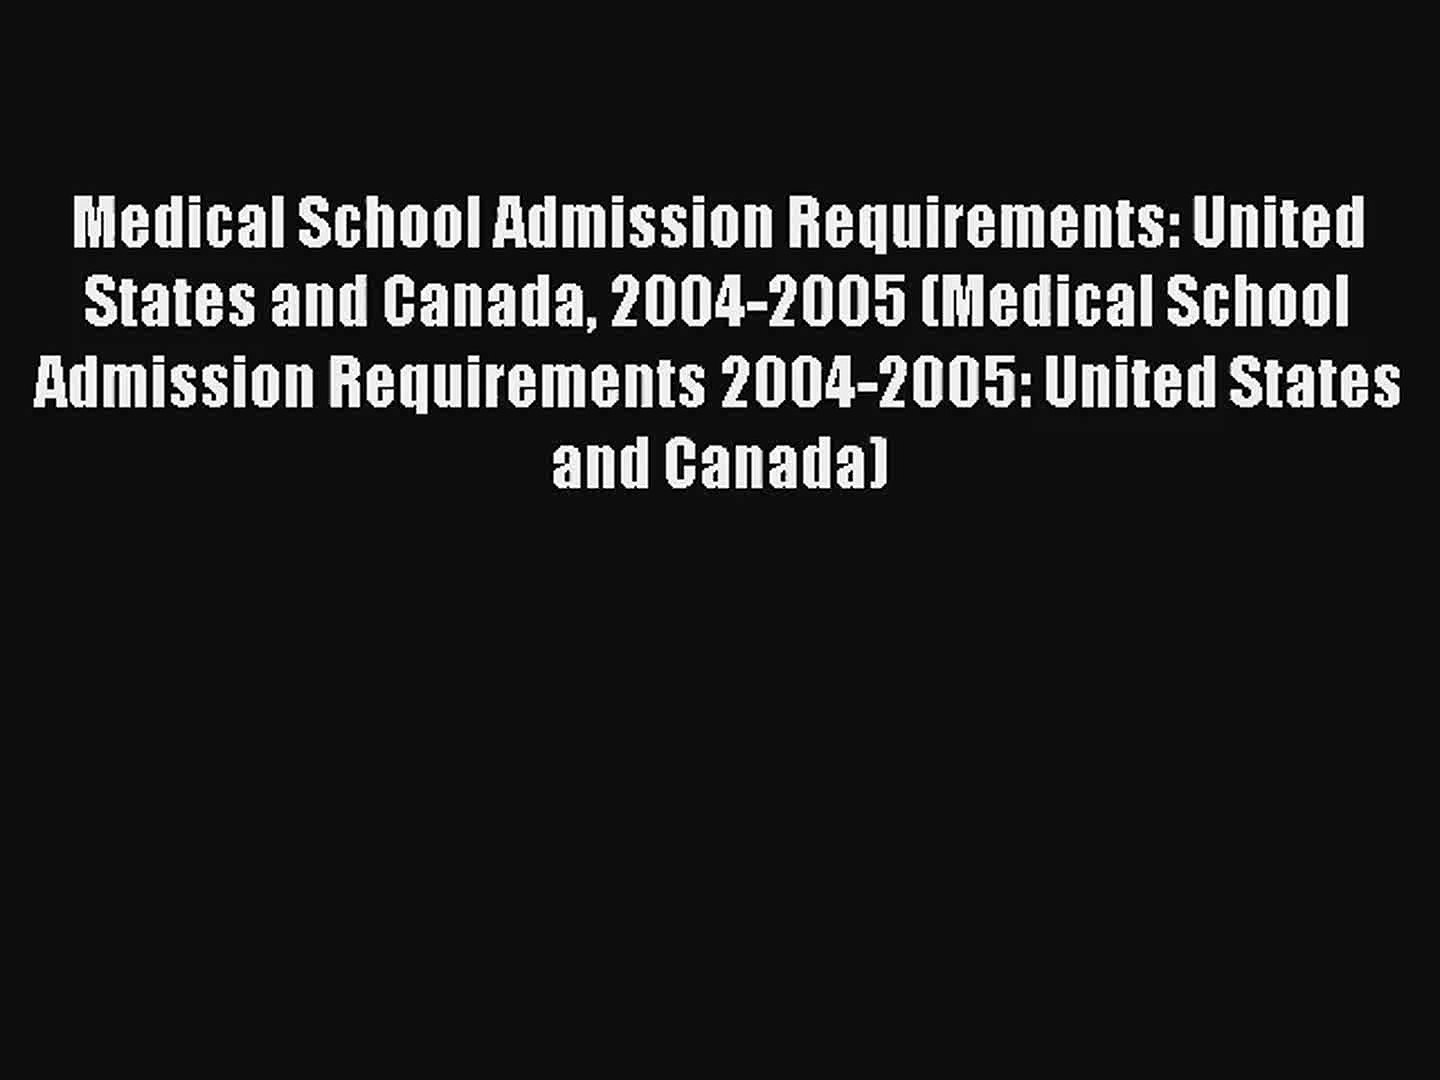 Medical School Admission Requirements: United States and Canada 2004-2005  (Medical School Admission